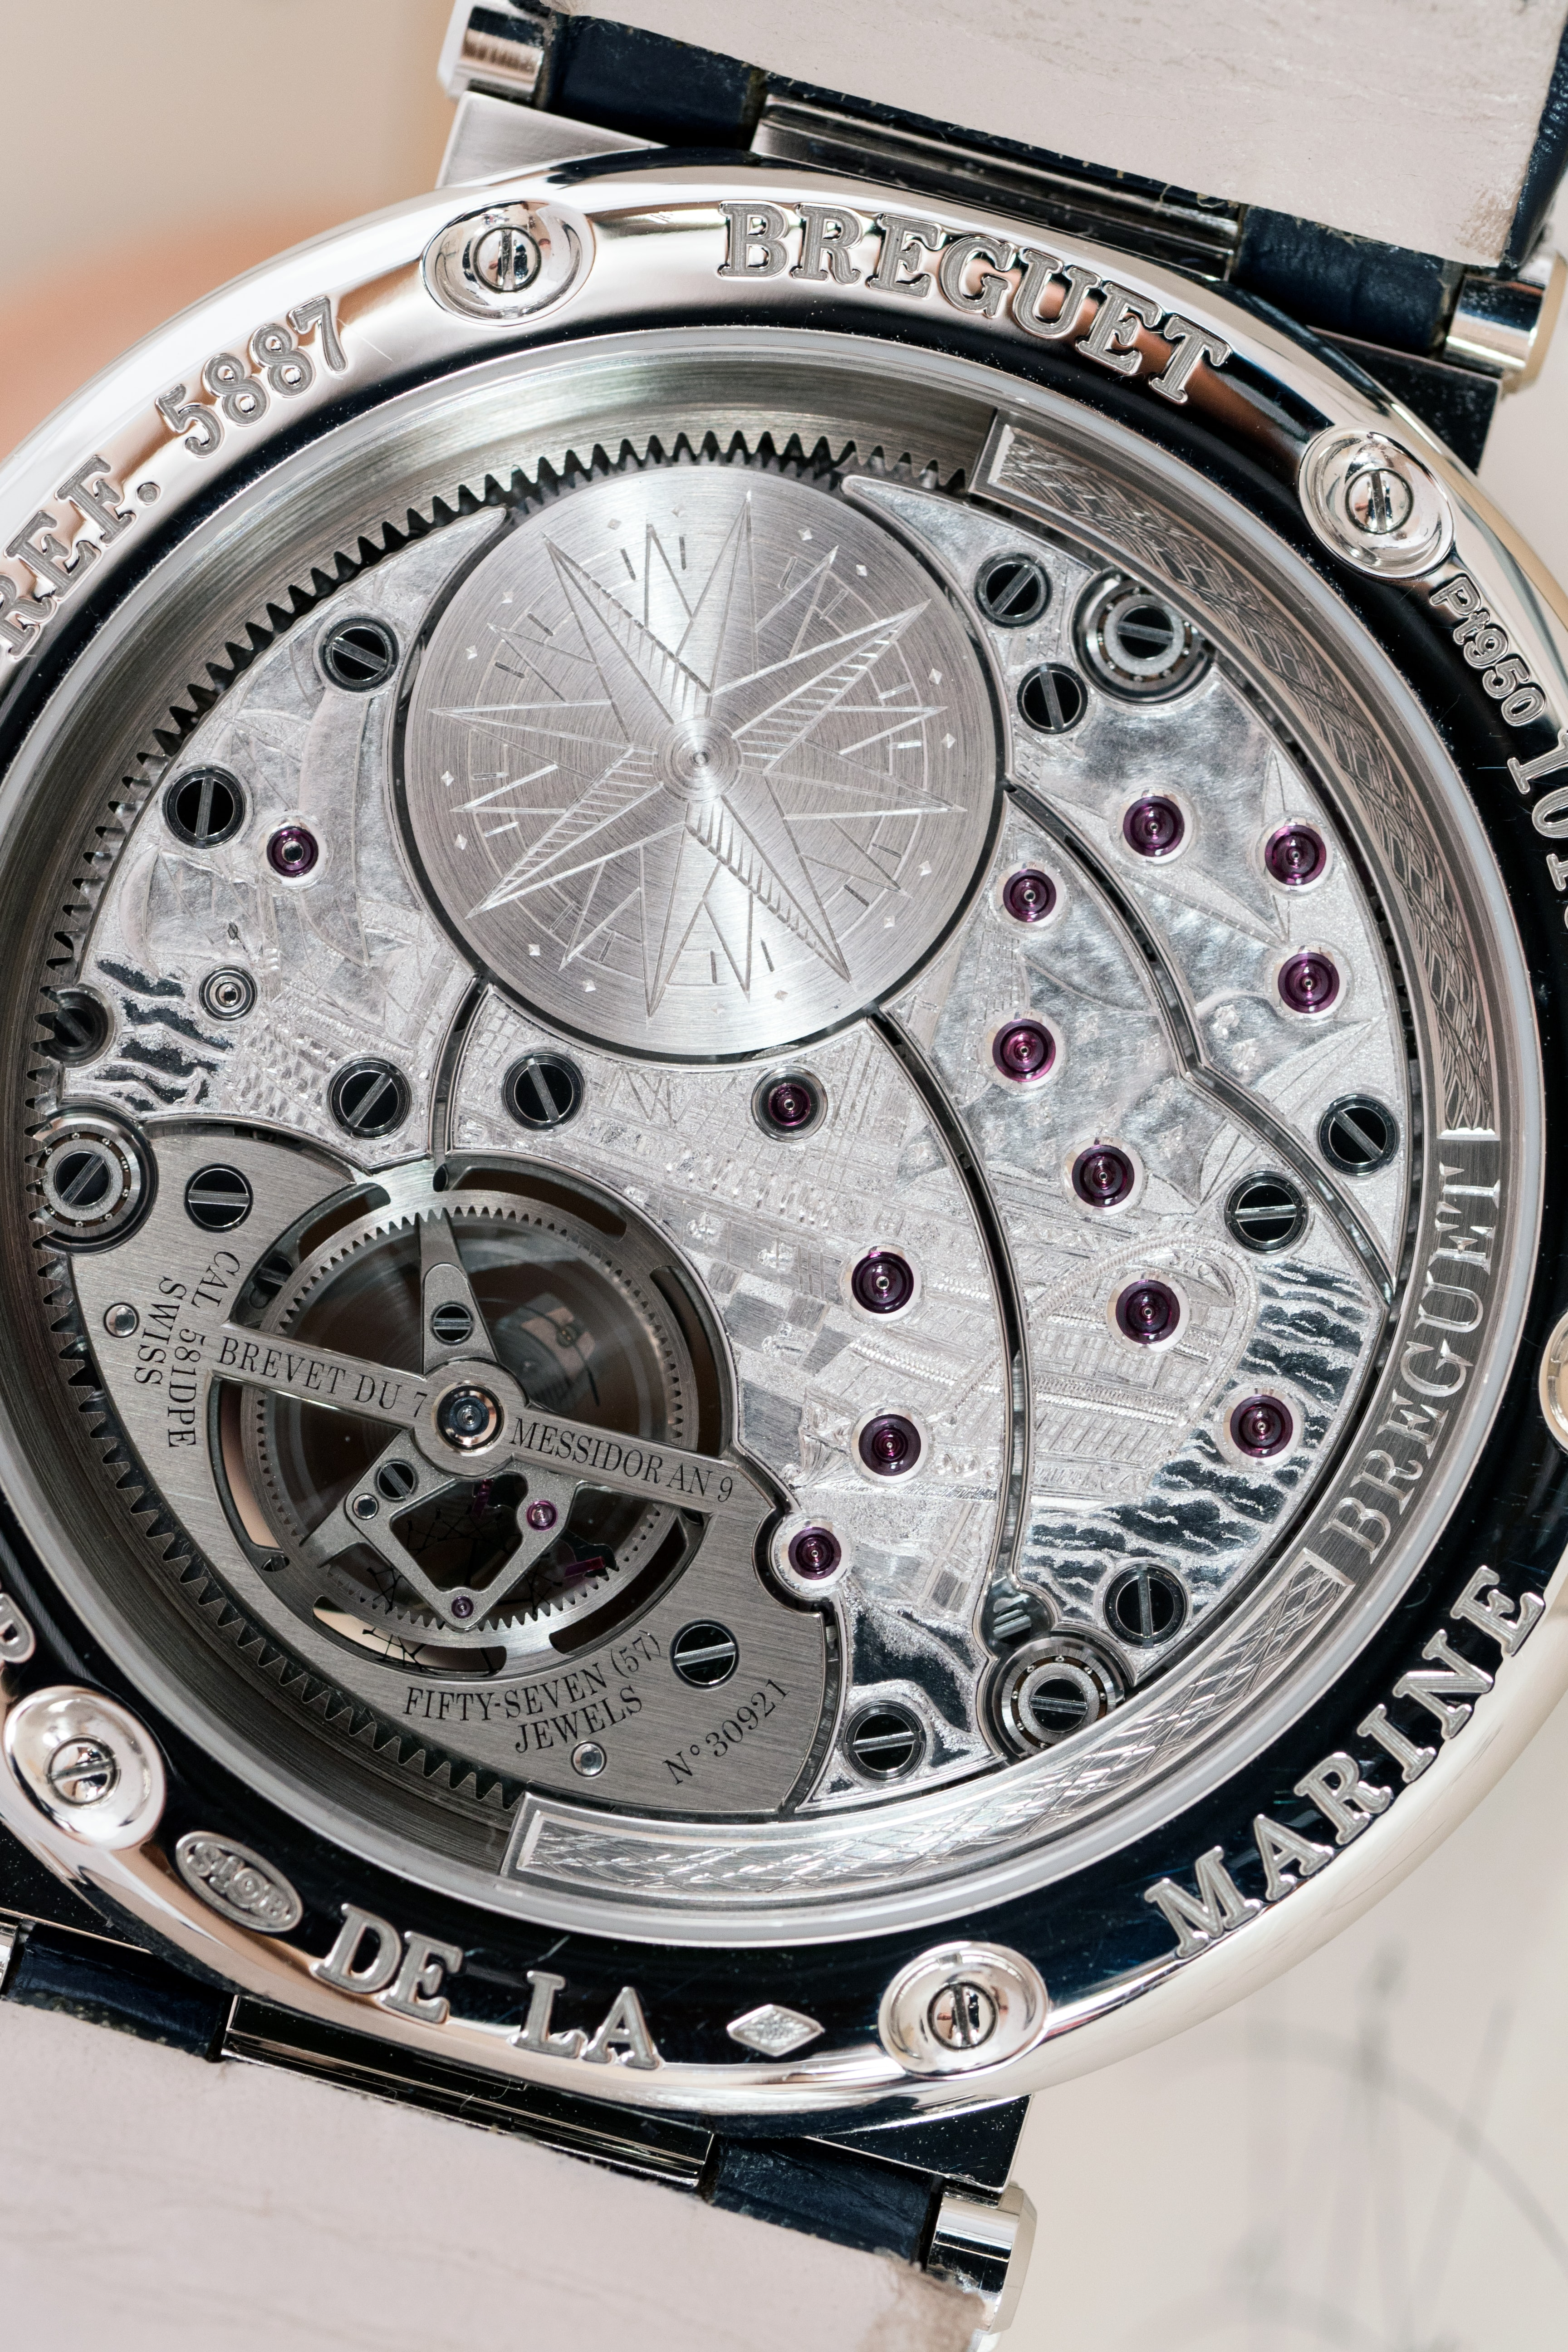 Breguet caliber 581DPE engraving Introducing: The Breguet Marine quation Marchante 5887 Introducing: The Breguet Marine quation Marchante 5887 P5241048 1